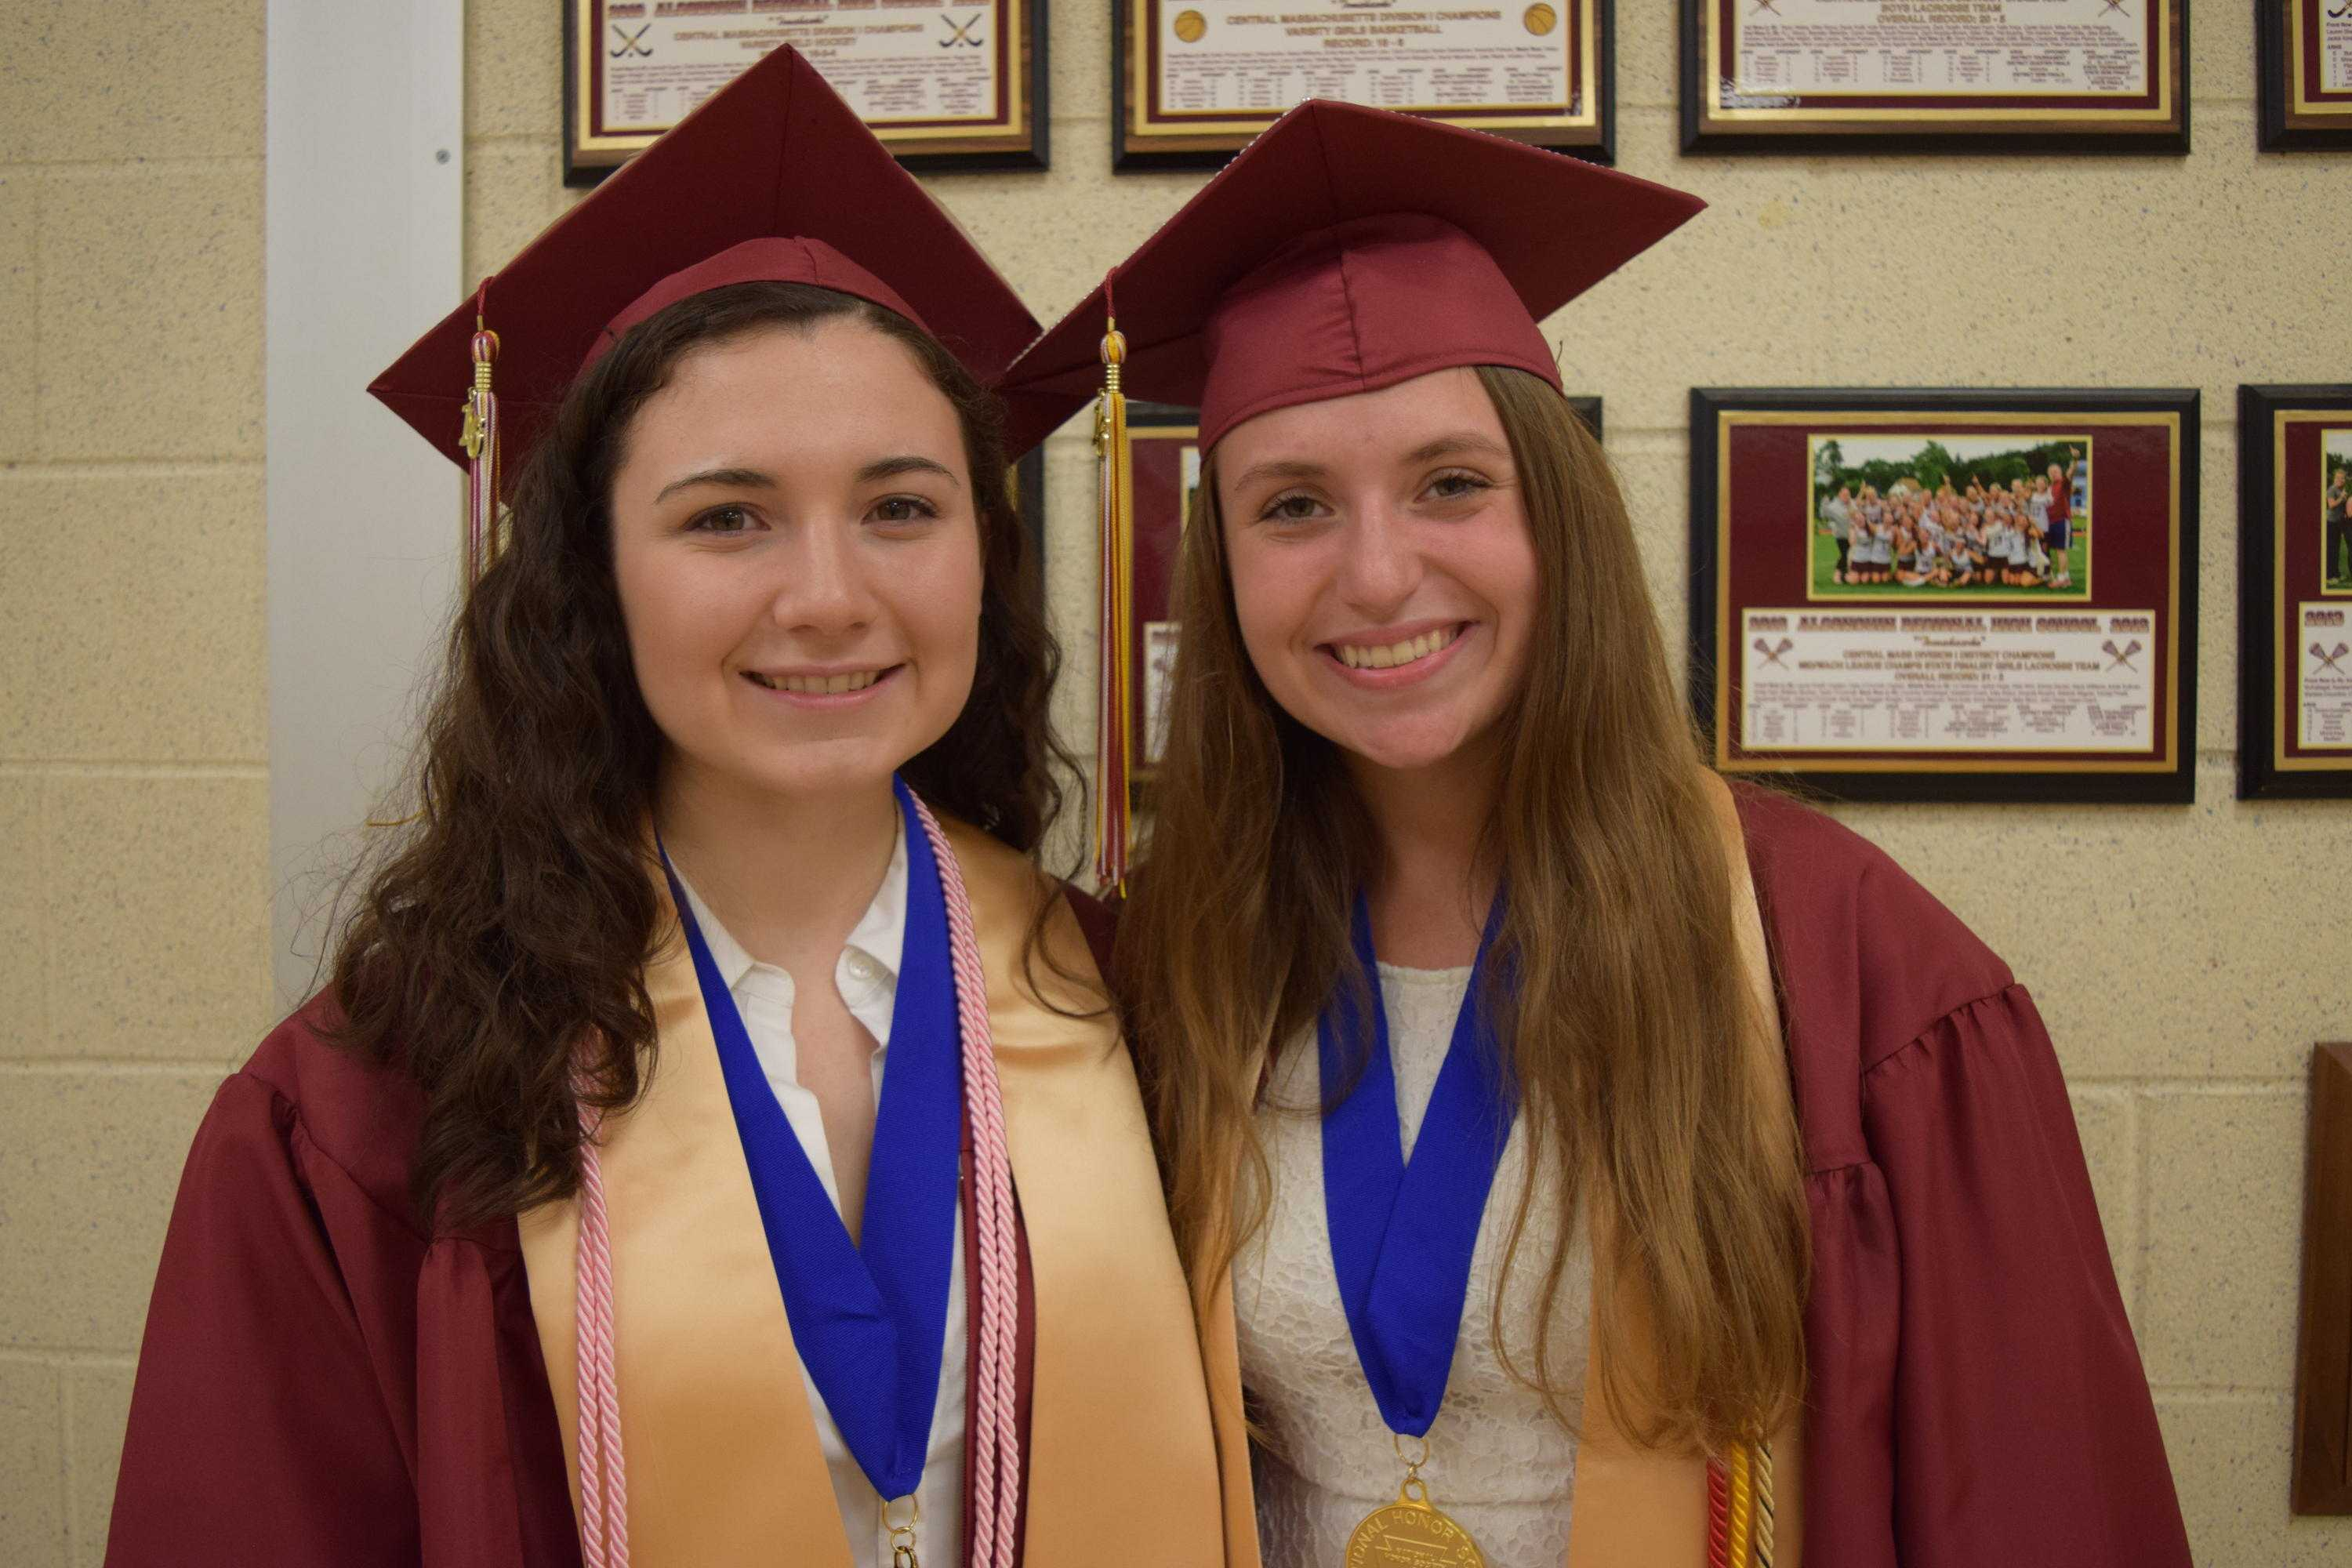 Valedictorians Gabrielle Russo and Riley Casey shared the exact same GPA and were surprised that two people could be ranked first in the class.